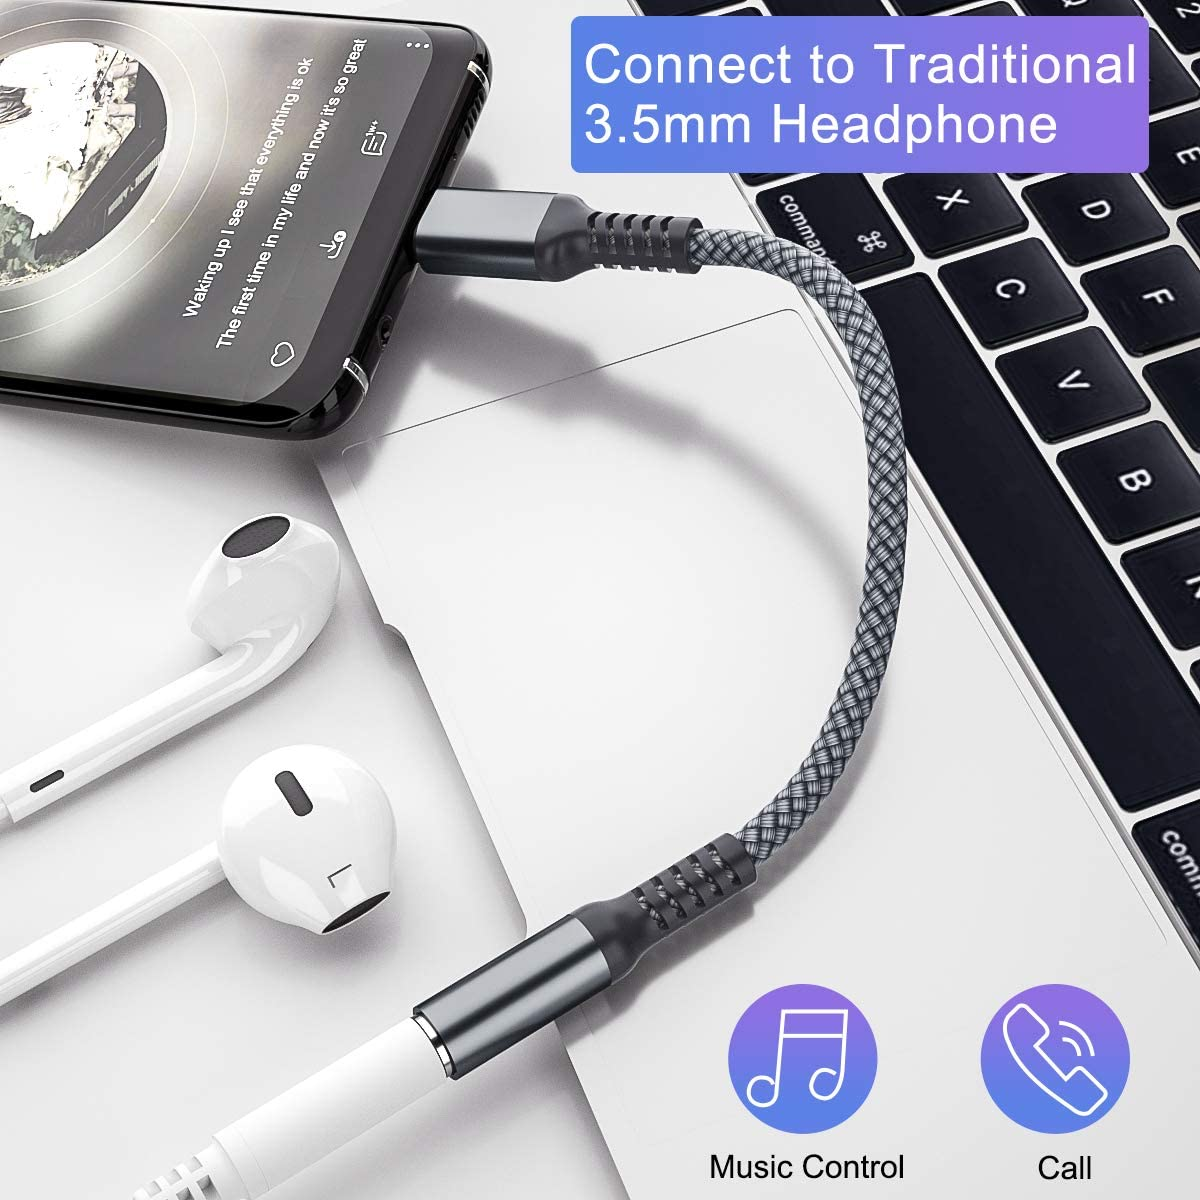 ,Type C Male to 3.5mm Female Headphone Jack Audio Converter,Aux Cable Cord for Samsung Galaxy S20 Ultra S20 2 Pack USB C to 3.5mm Adapter Note 10 10+,Google Pixel 4 4a 3 2 XL,iPad Pro 11 Plus 20 20